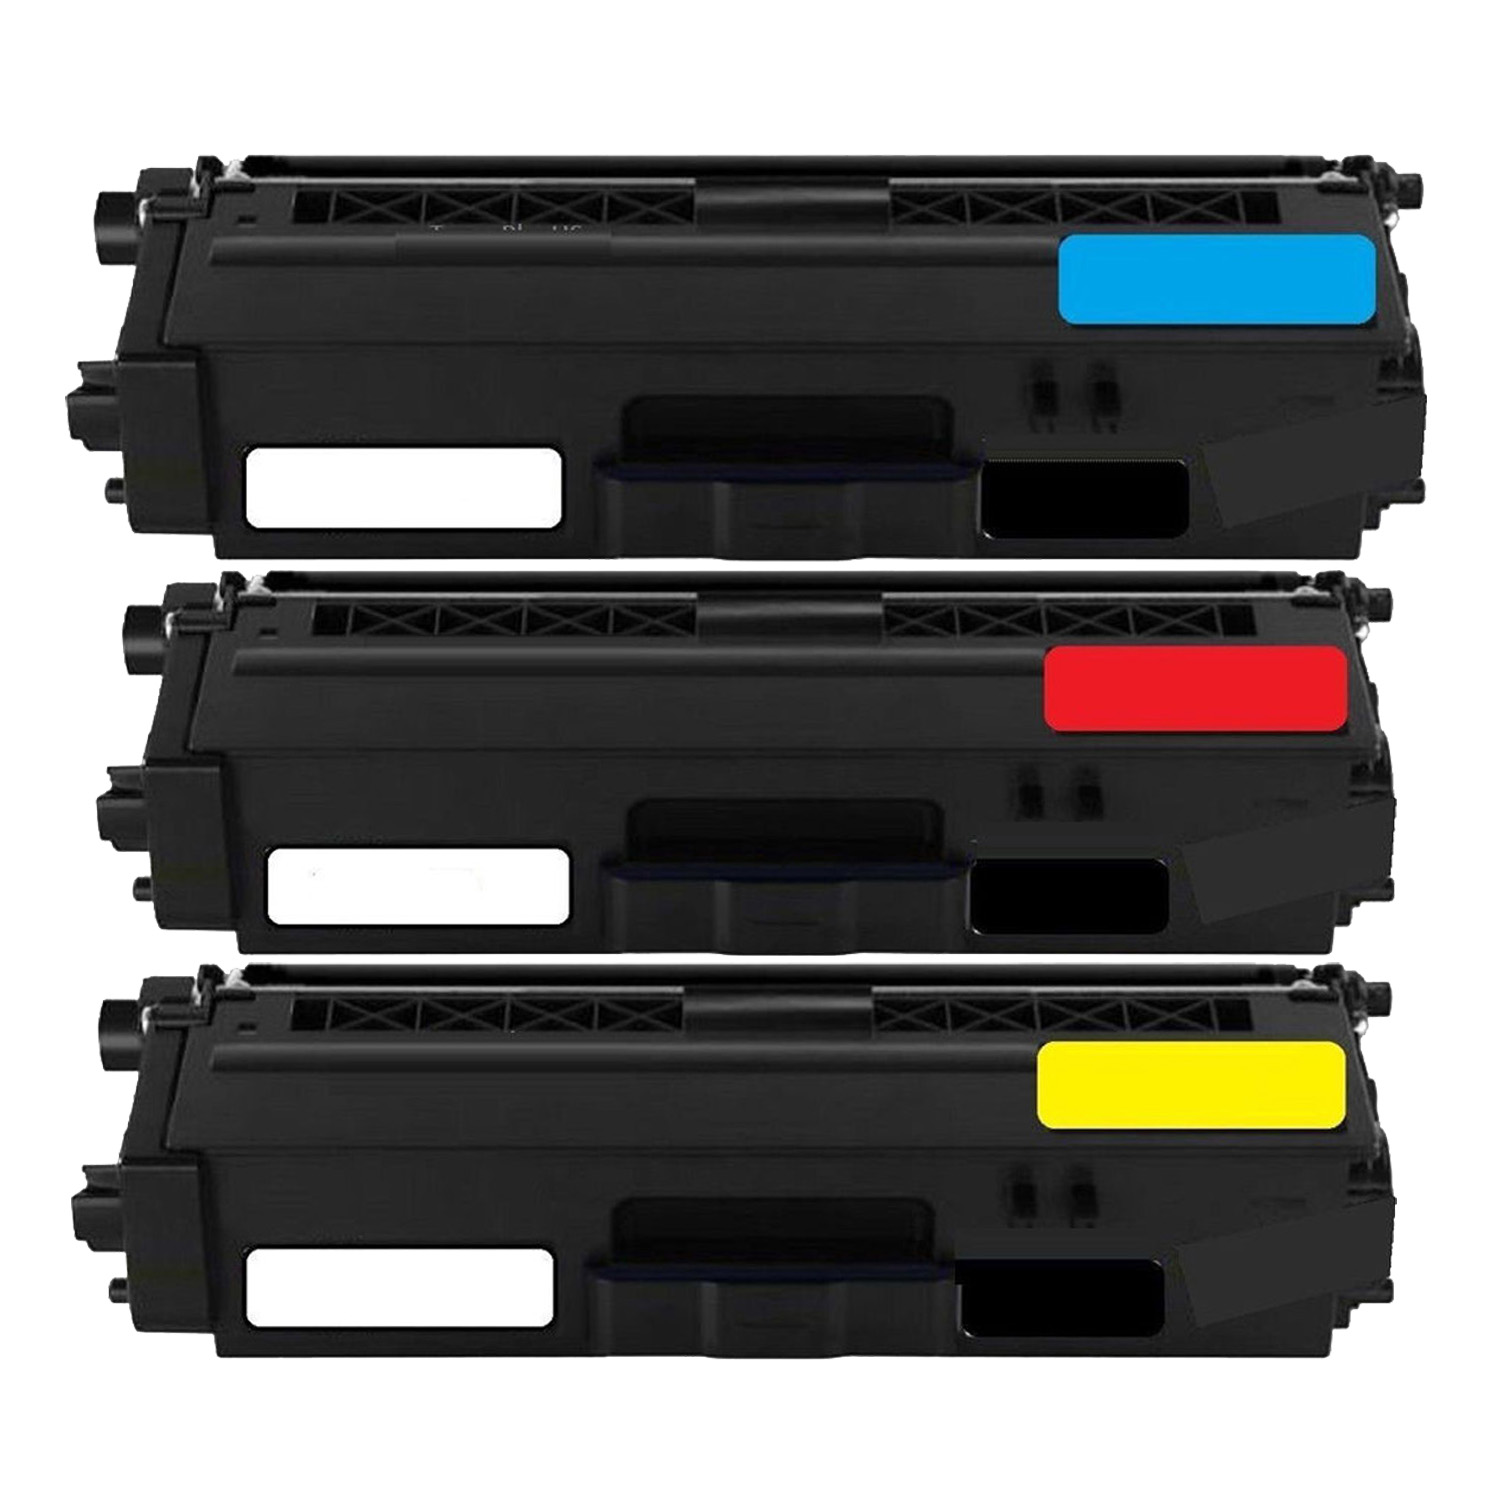 3 Pack New Compatible with Brother TN336C TN336M TN336Y Toner Cartridge for Brother HL-L8250CDN MFC-L8600CDW